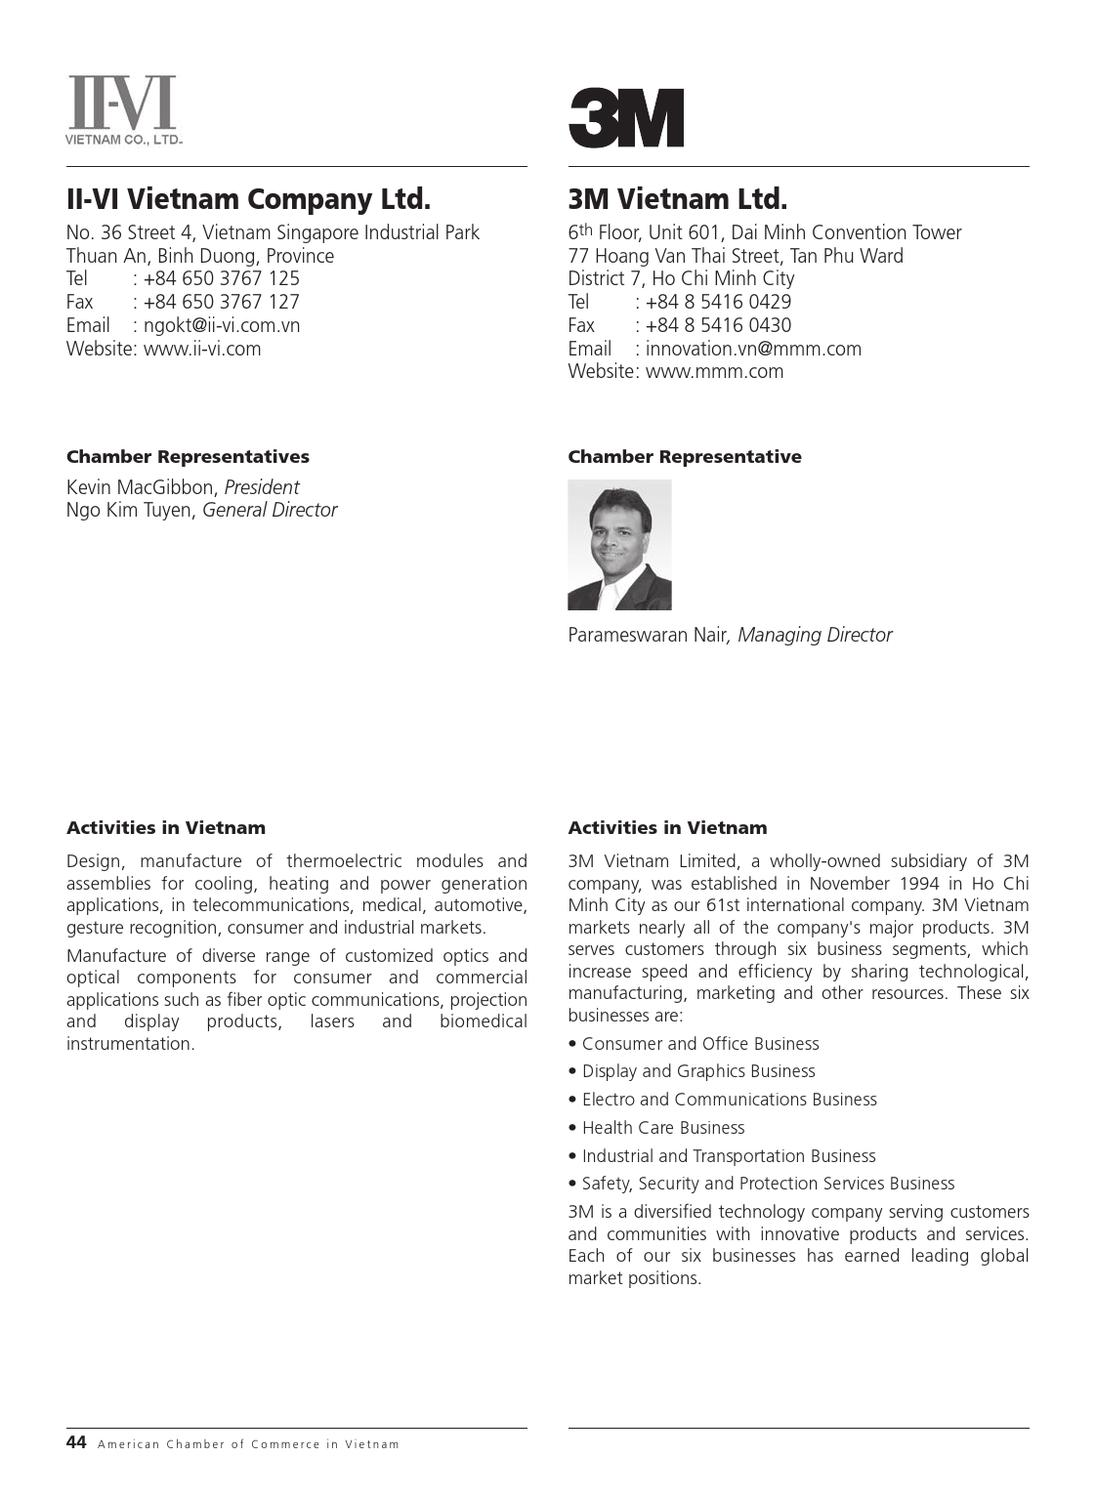 AmCham Vietnam in HCMC - Membership Directory 2012 by Minh Le - issuu